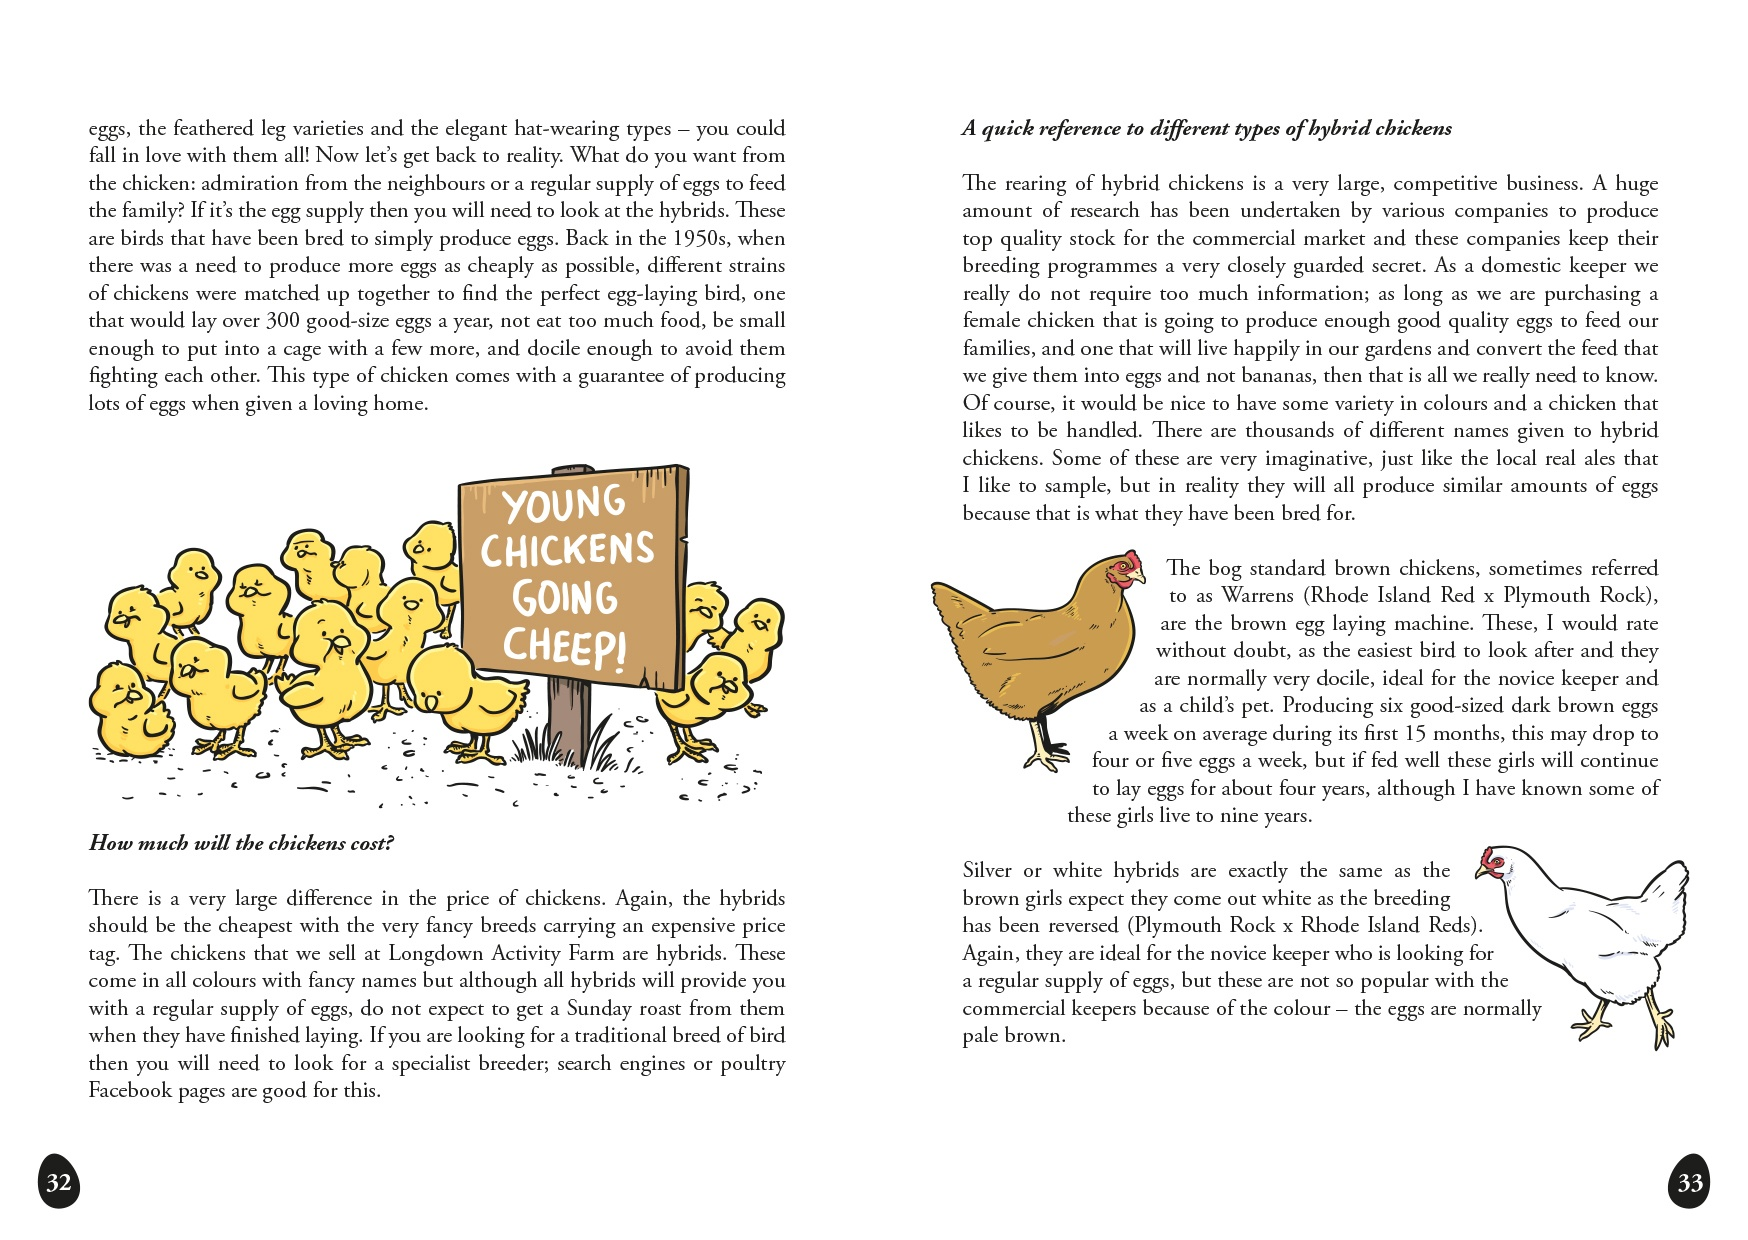 Chickens In Your Garden_Spread2.jpg